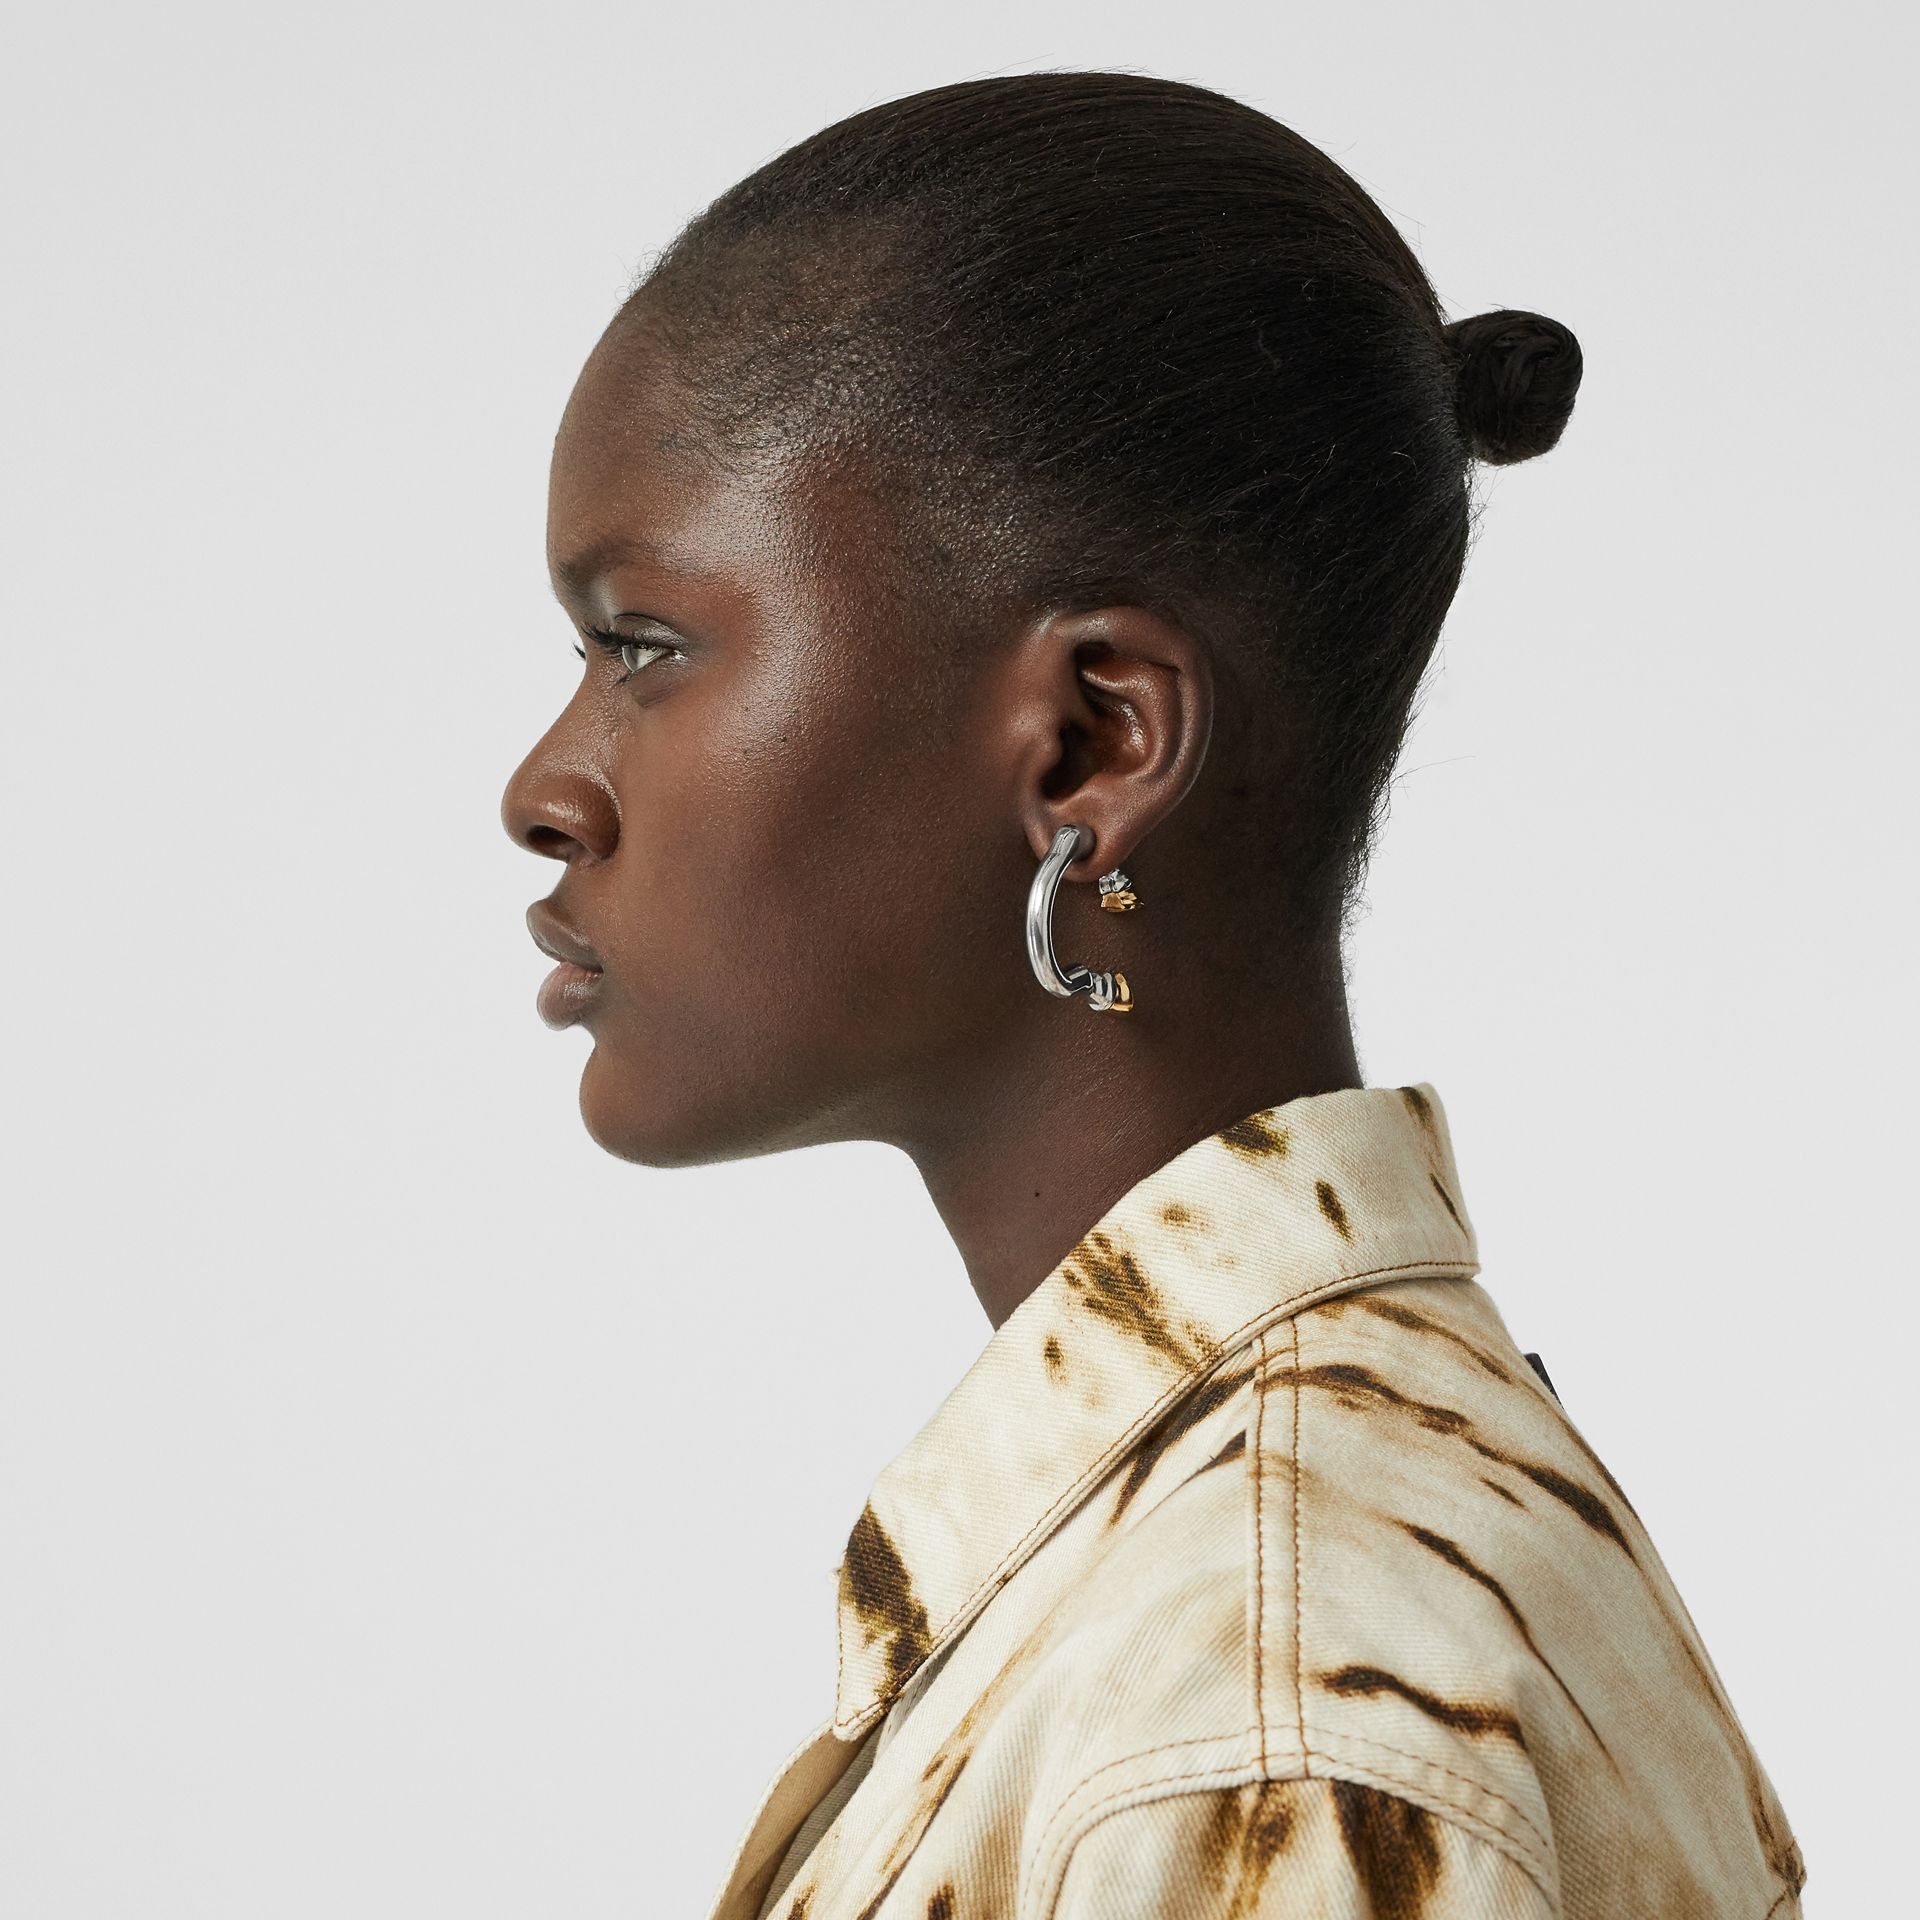 Palladium and Gold-plated Hoof Open-hoop Earrings in Palladio/gold - Women | Burberry - gallery image 2